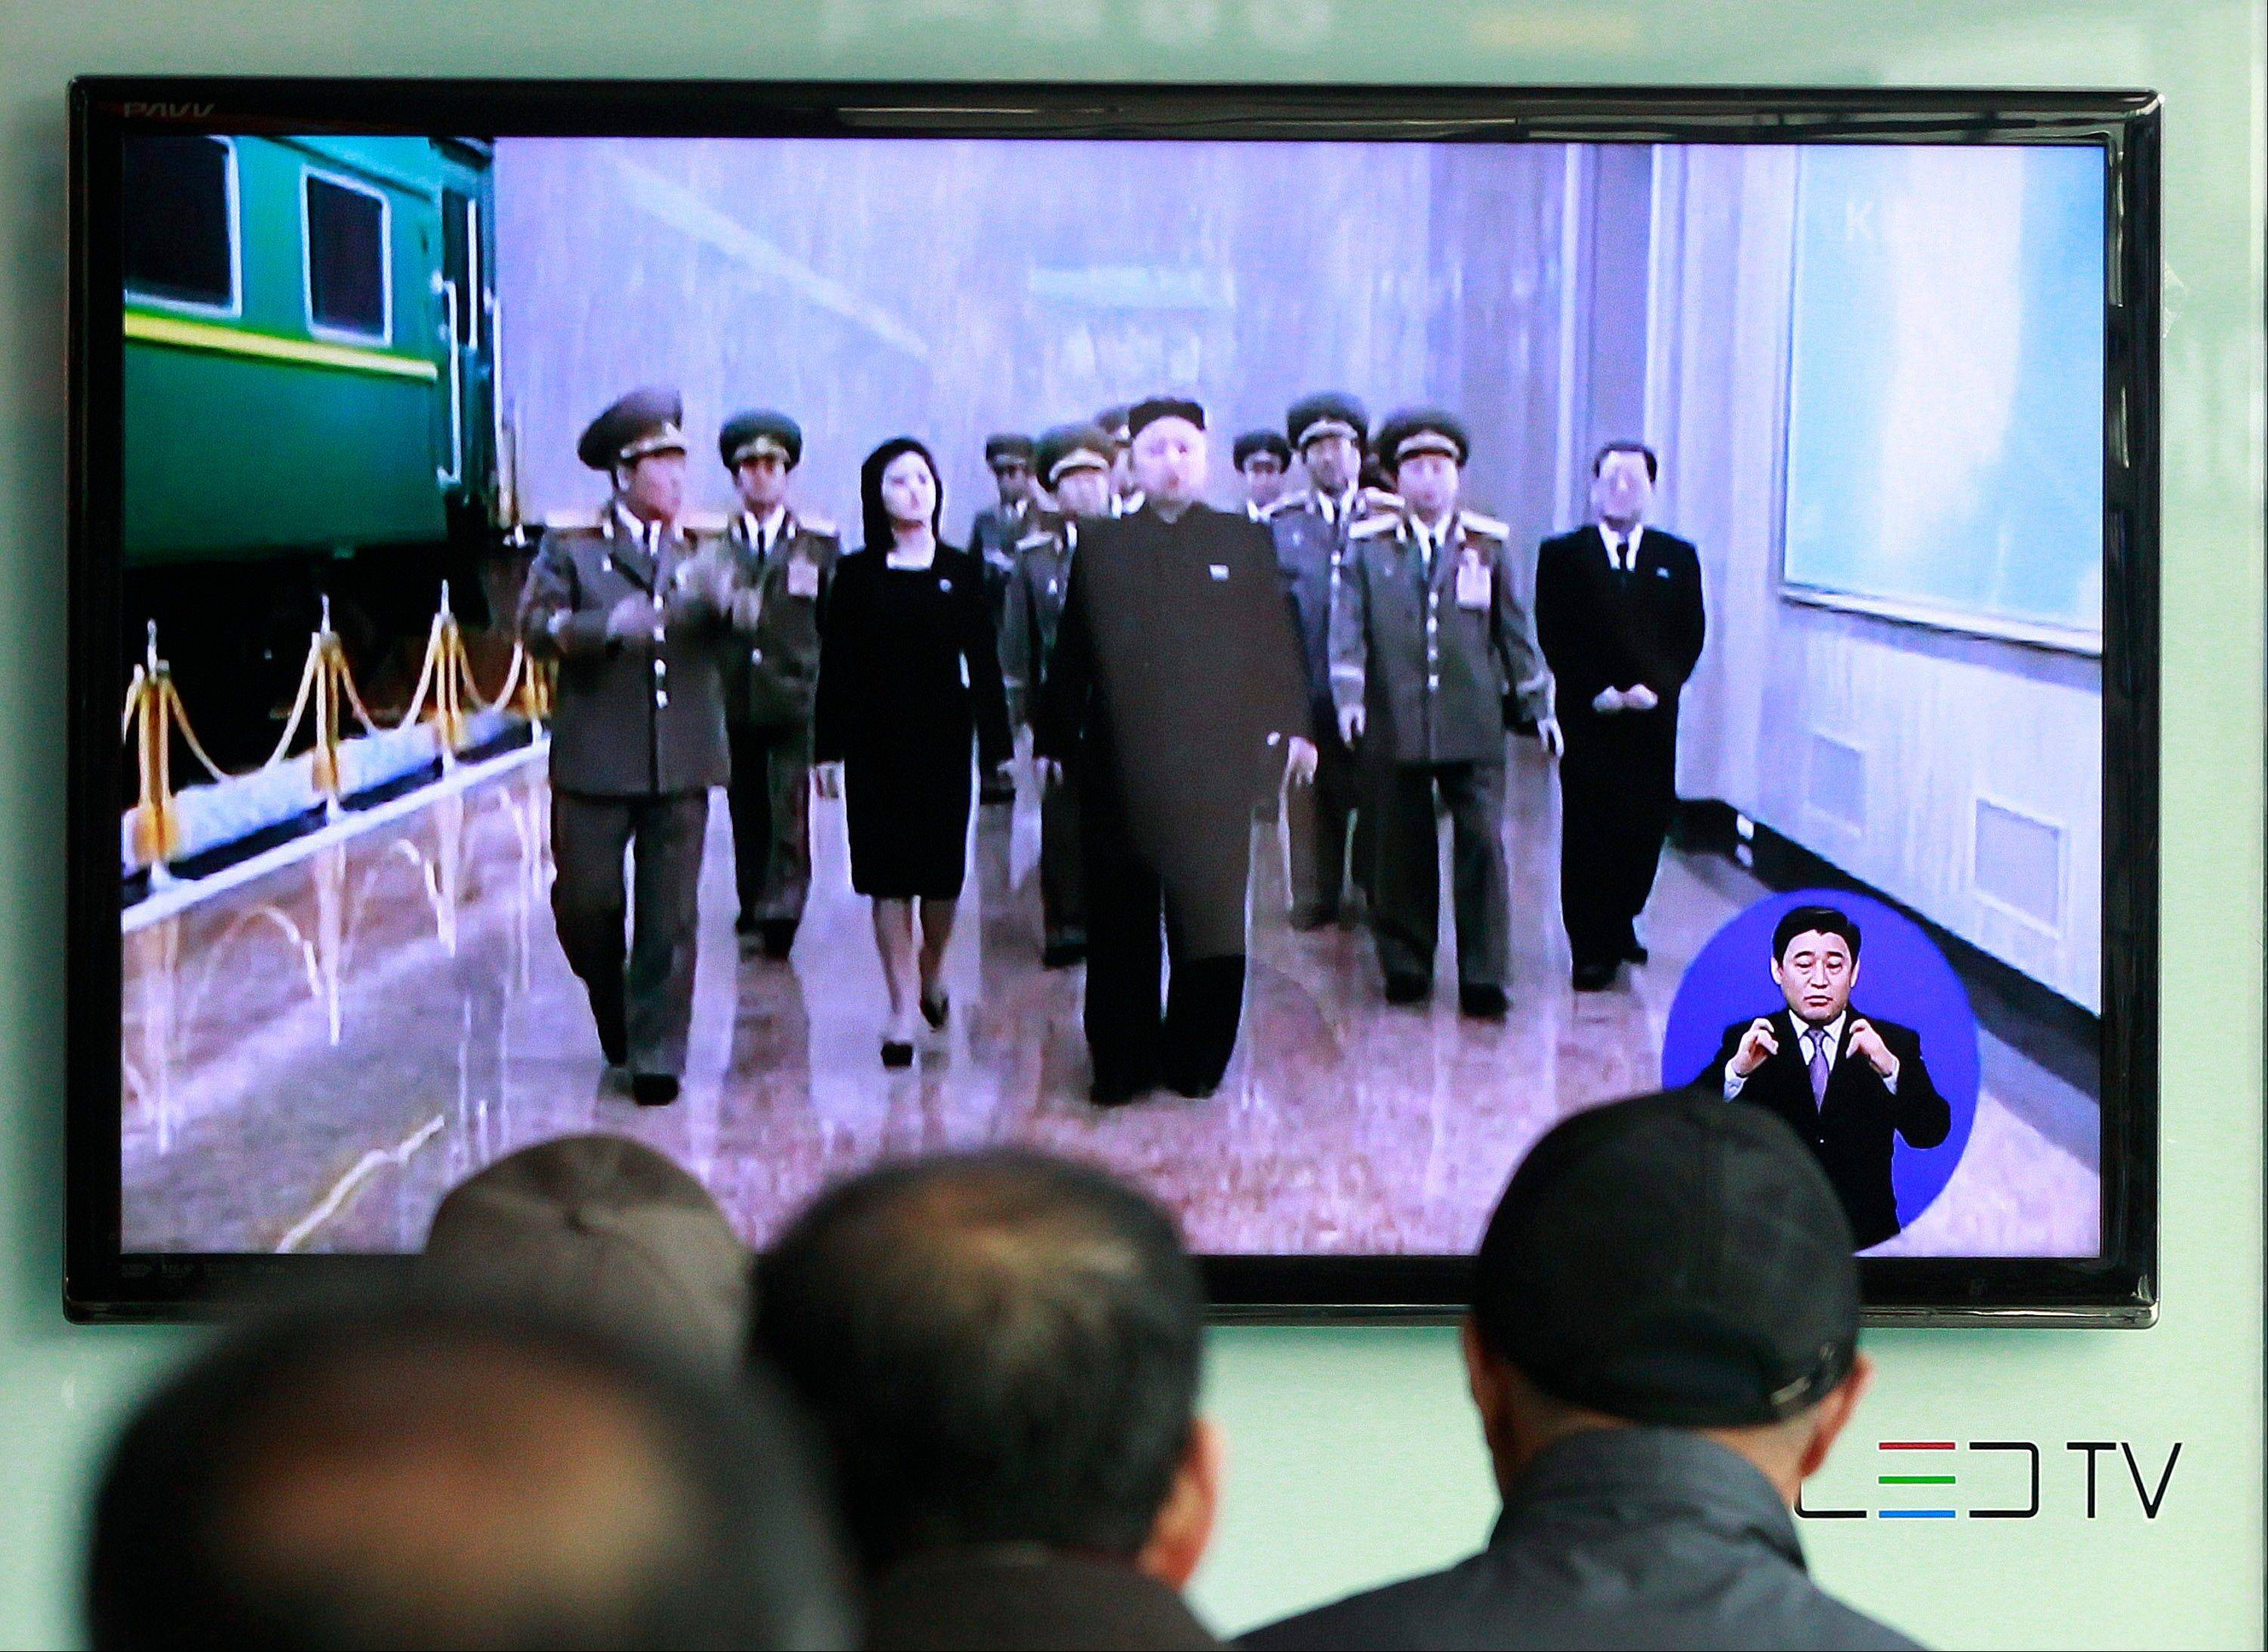 People in Seoul, South Korea, watch TV news program showing North Korean leader Kim Jong Un. In his 16 months on the job, Kim's government has raised fears with unusually aggressive threats against Seoul and Washington, and it's not clear whether he will be able to pull back, a feat perfected by his late father, considered a master at brinkmanship.